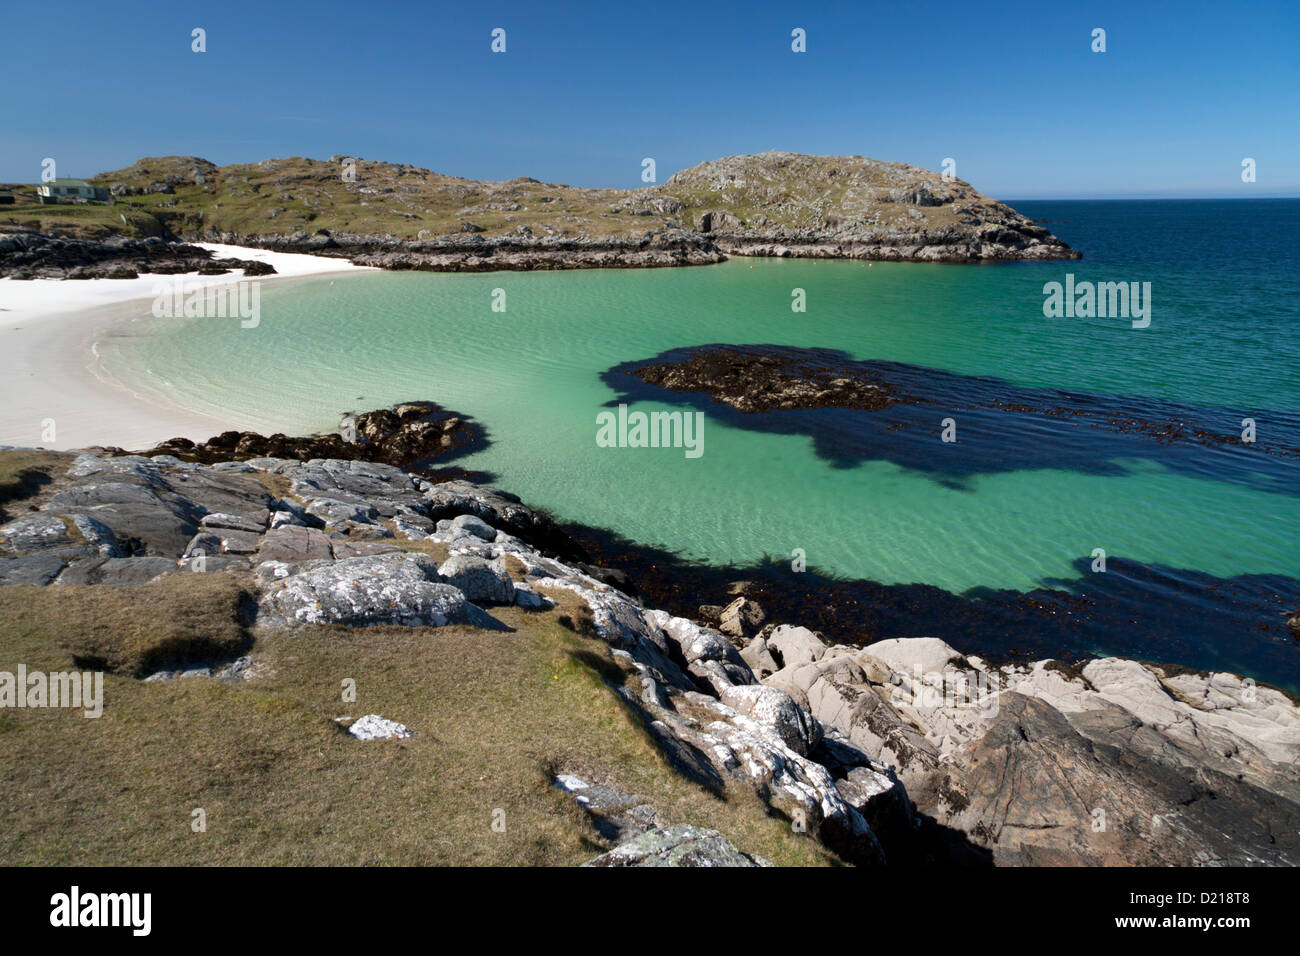 The beach at Achmelvich, near Lochinver in Sutherland on the west coast of Scotland. - Stock Image